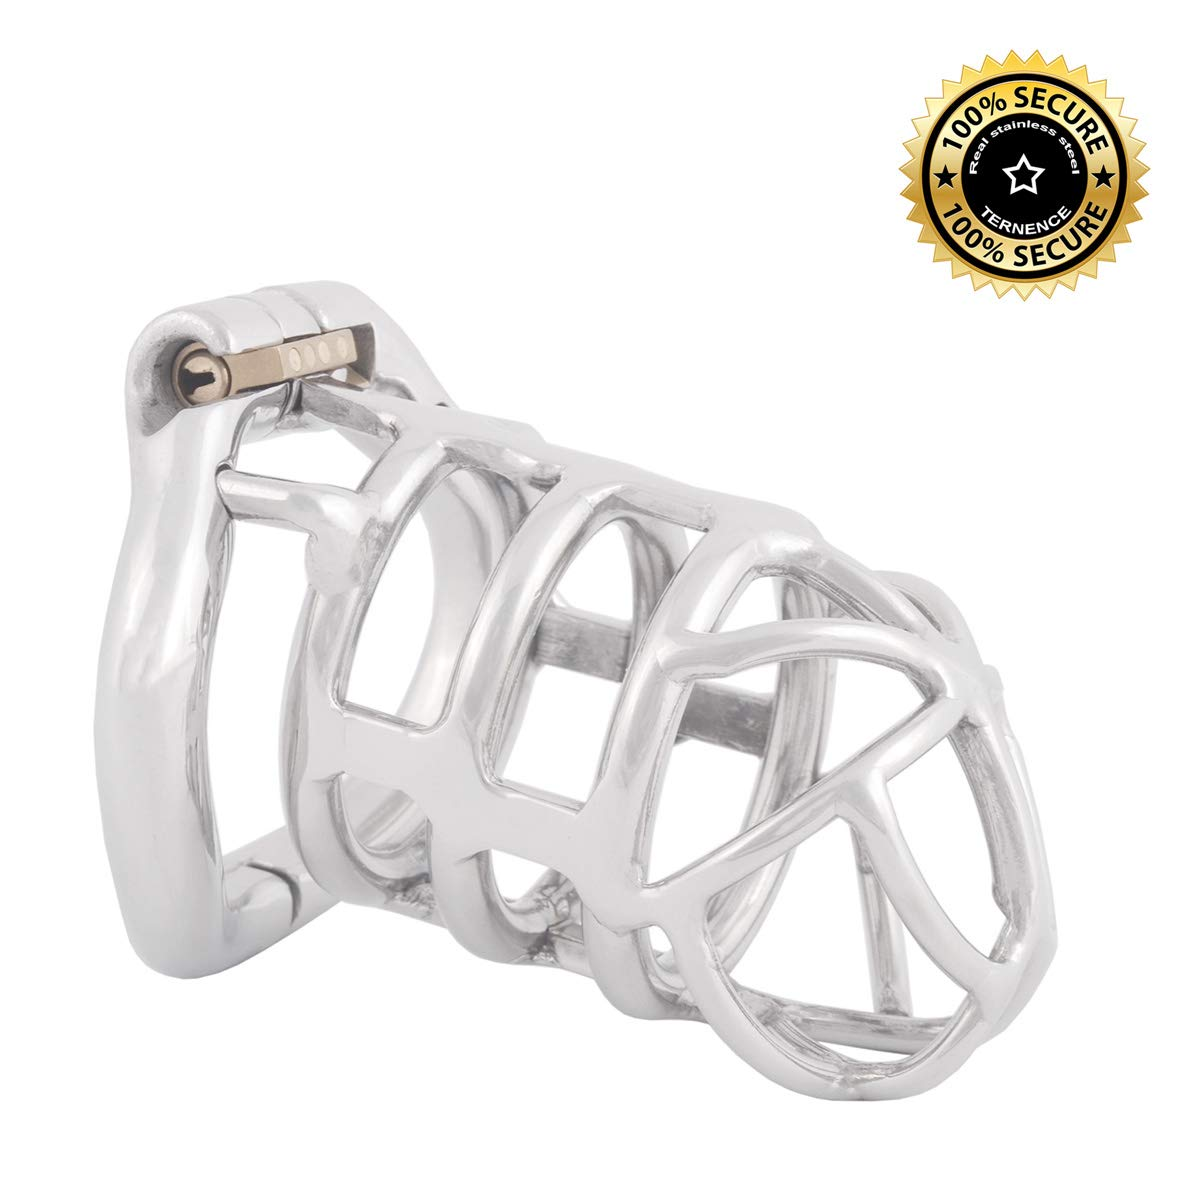 TERNENCE Stealth Convenient Lock Chastity Cage Device Ergonomic Design for Male SM Penis Exercise Sex Toys (50mm L Size) by TERNENCE